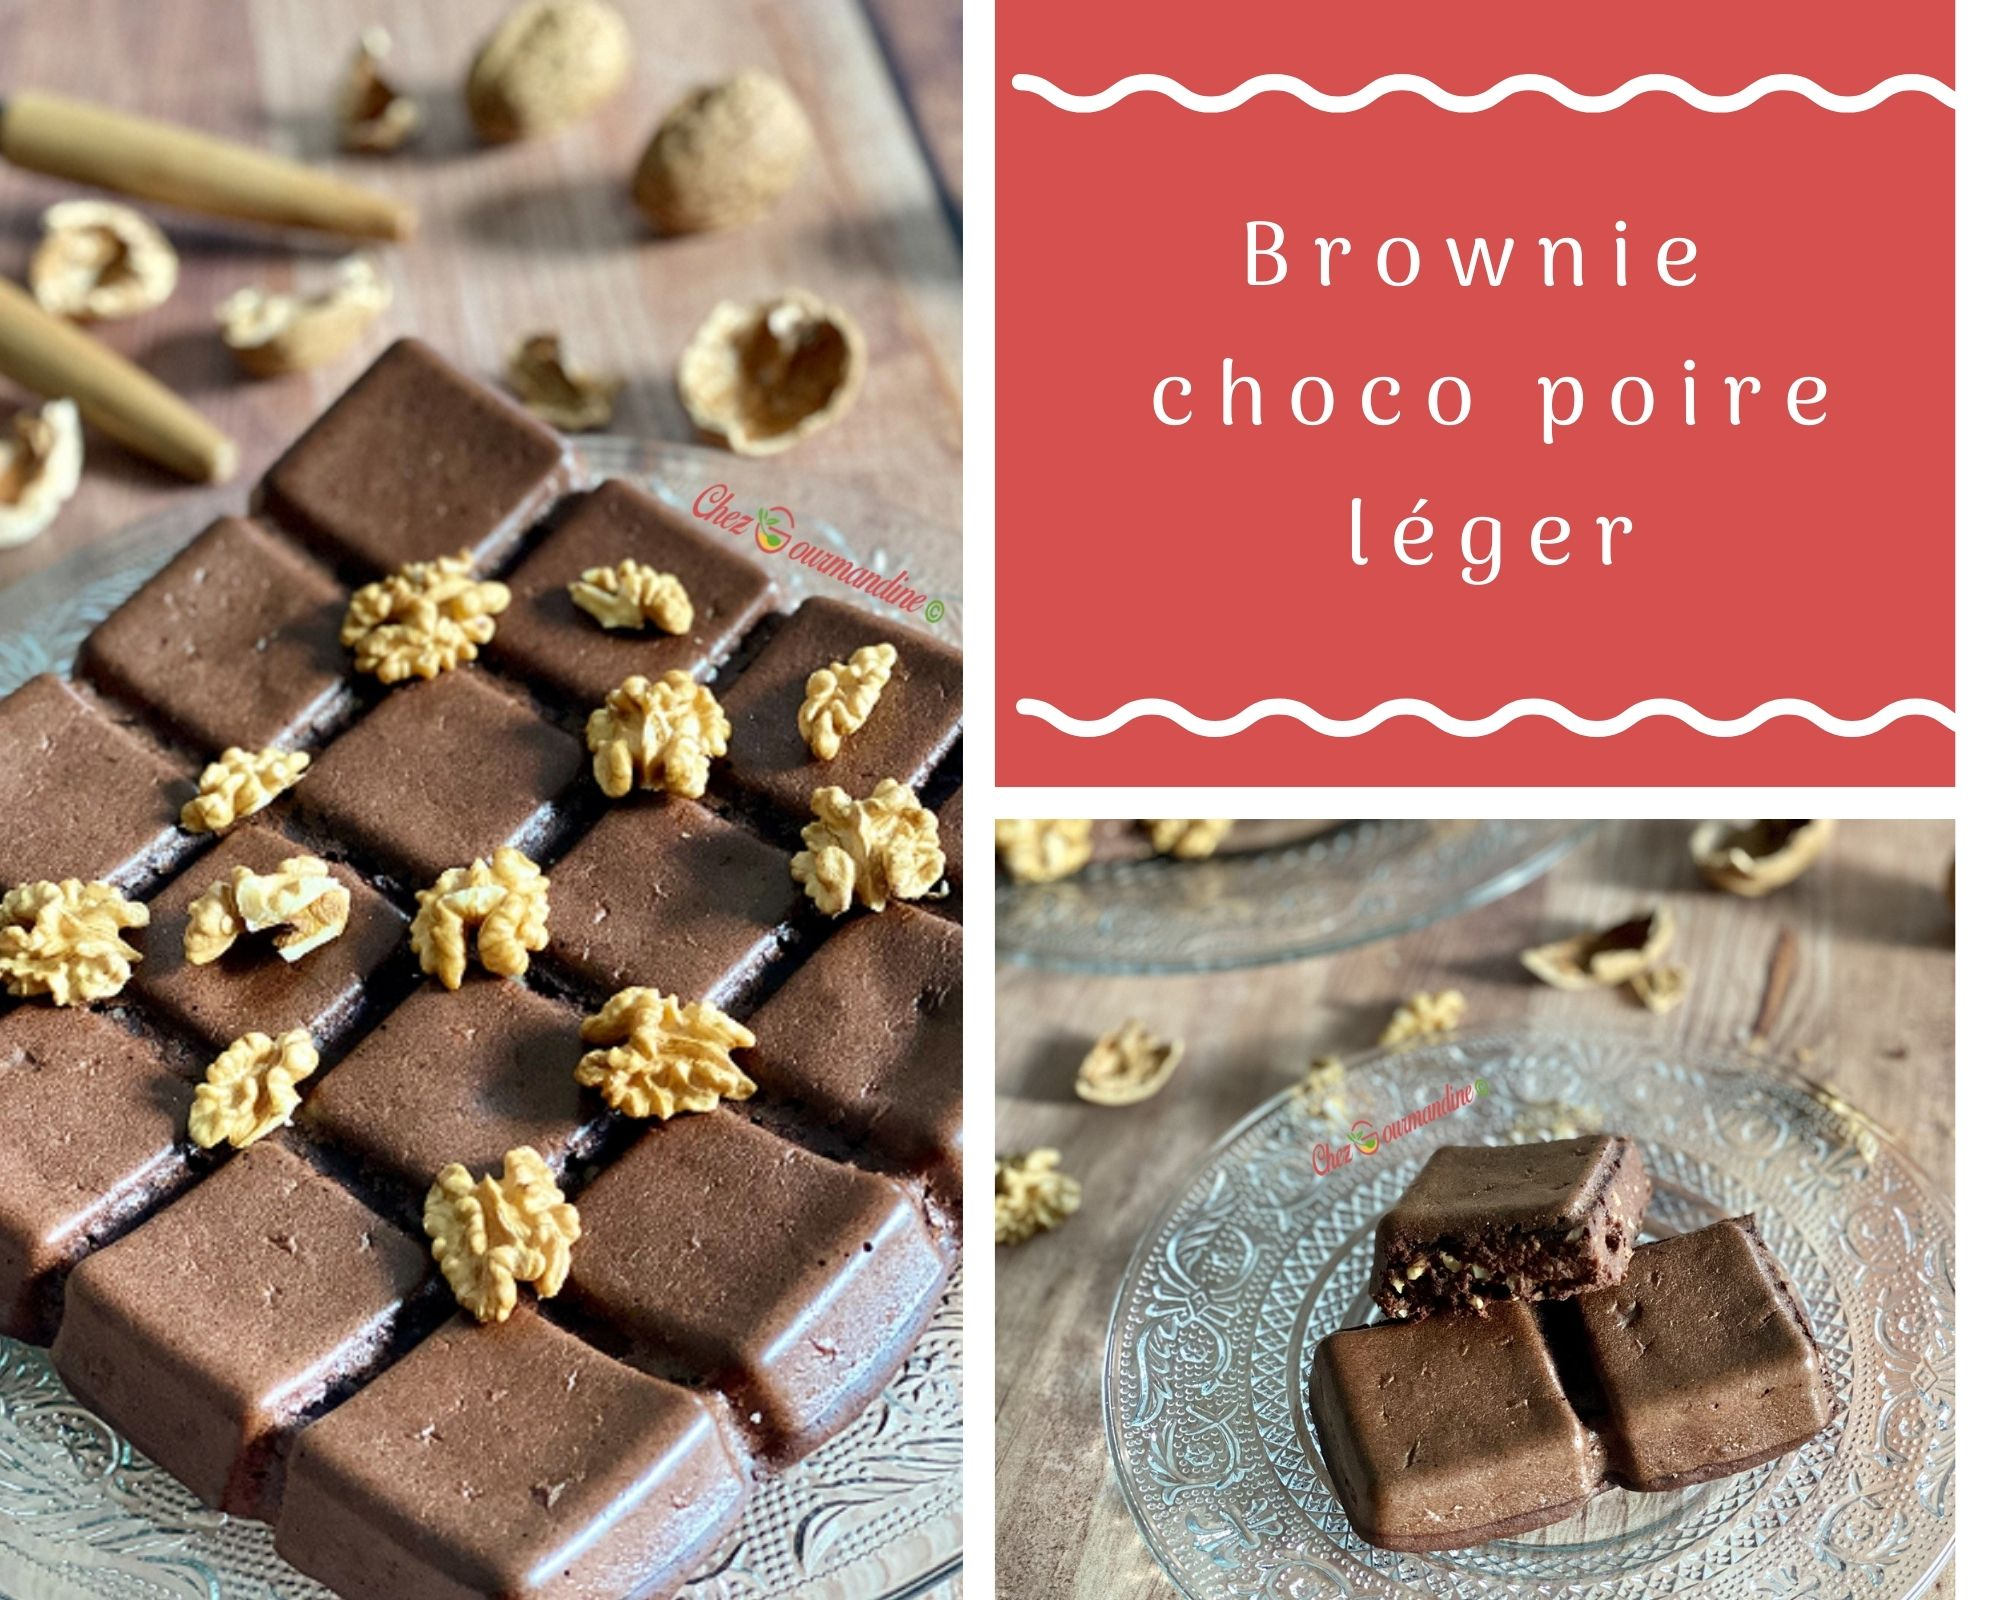 Brownie choco poire léger